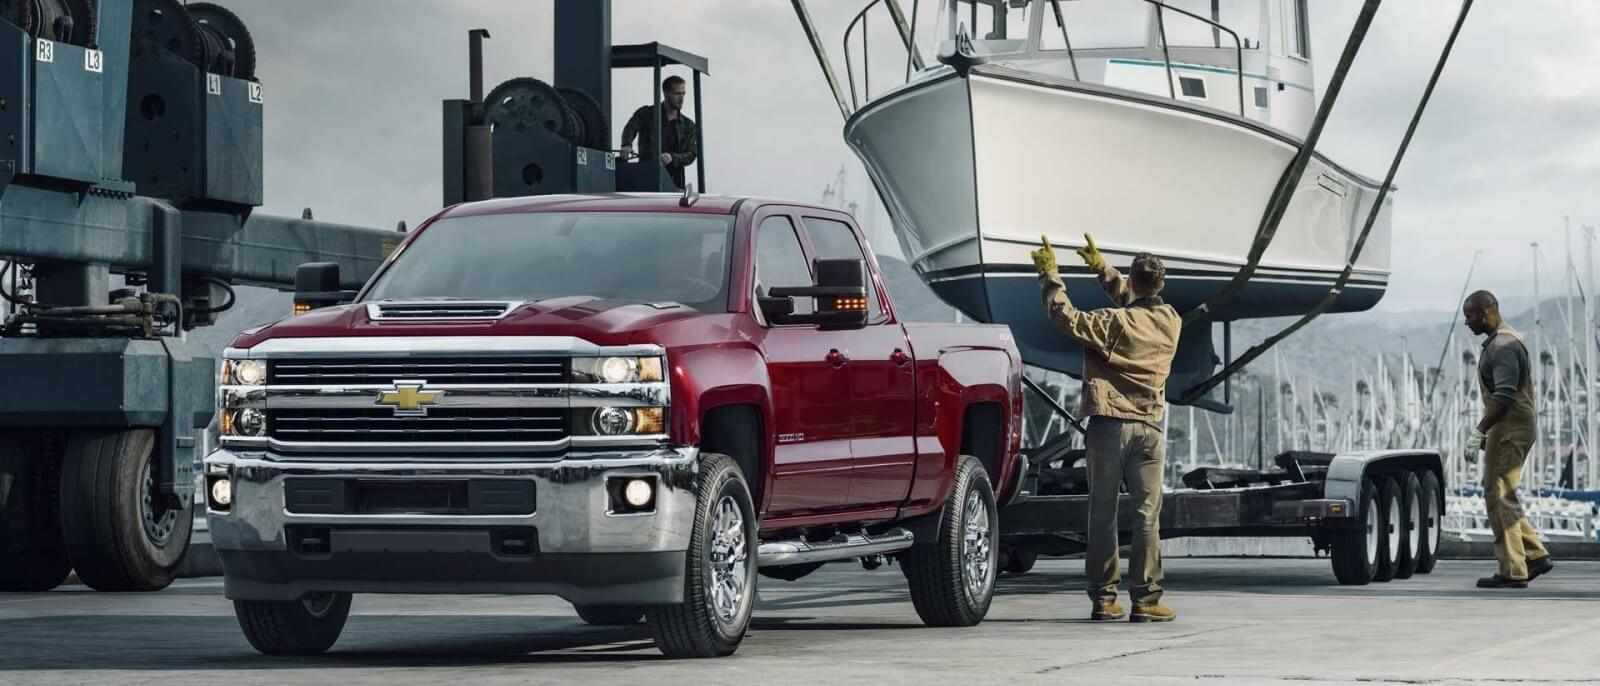 2017 Chevrolet Silverado 3500HD red exterior model